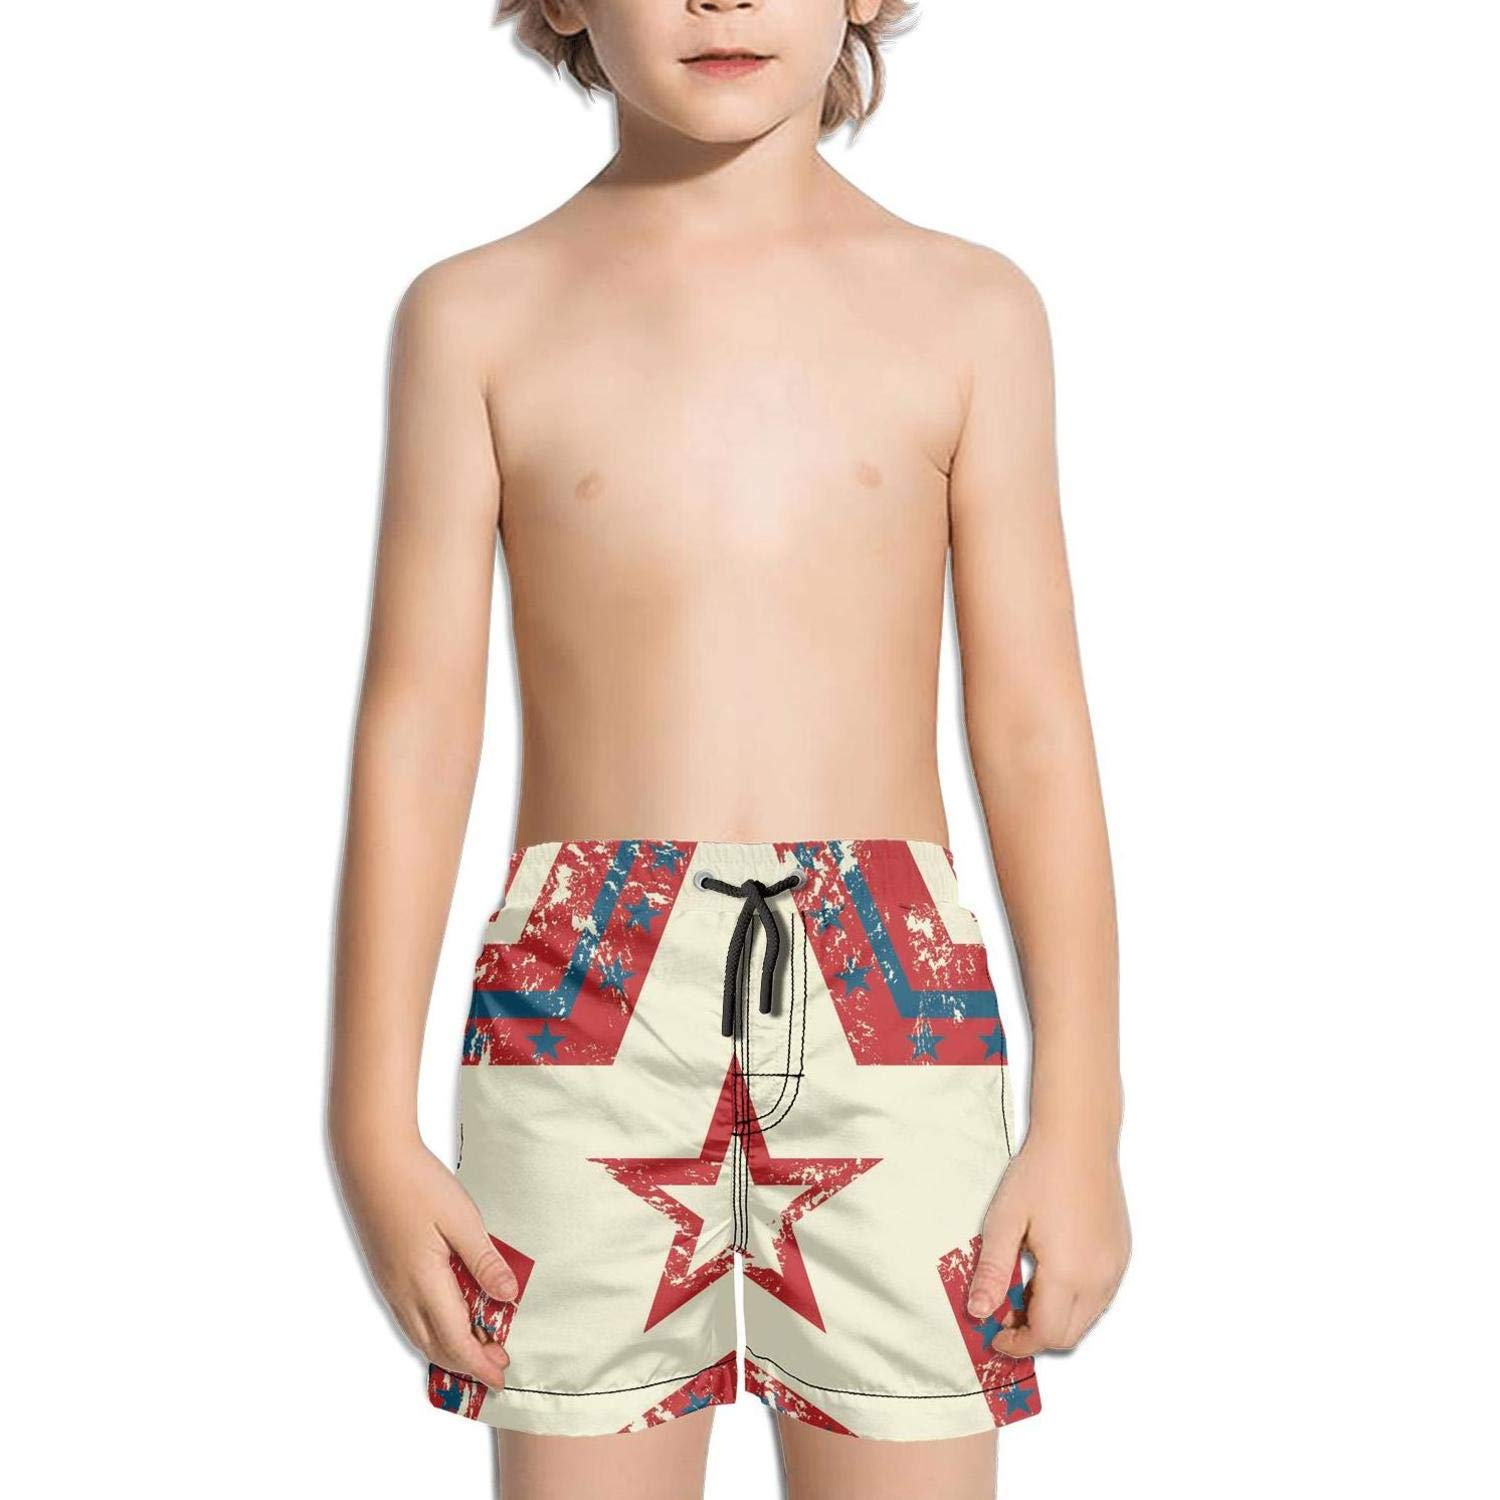 4th of July American Flag independce2 Fashion Swim Trunks BingGuiC Boys Quick Dry Shorts